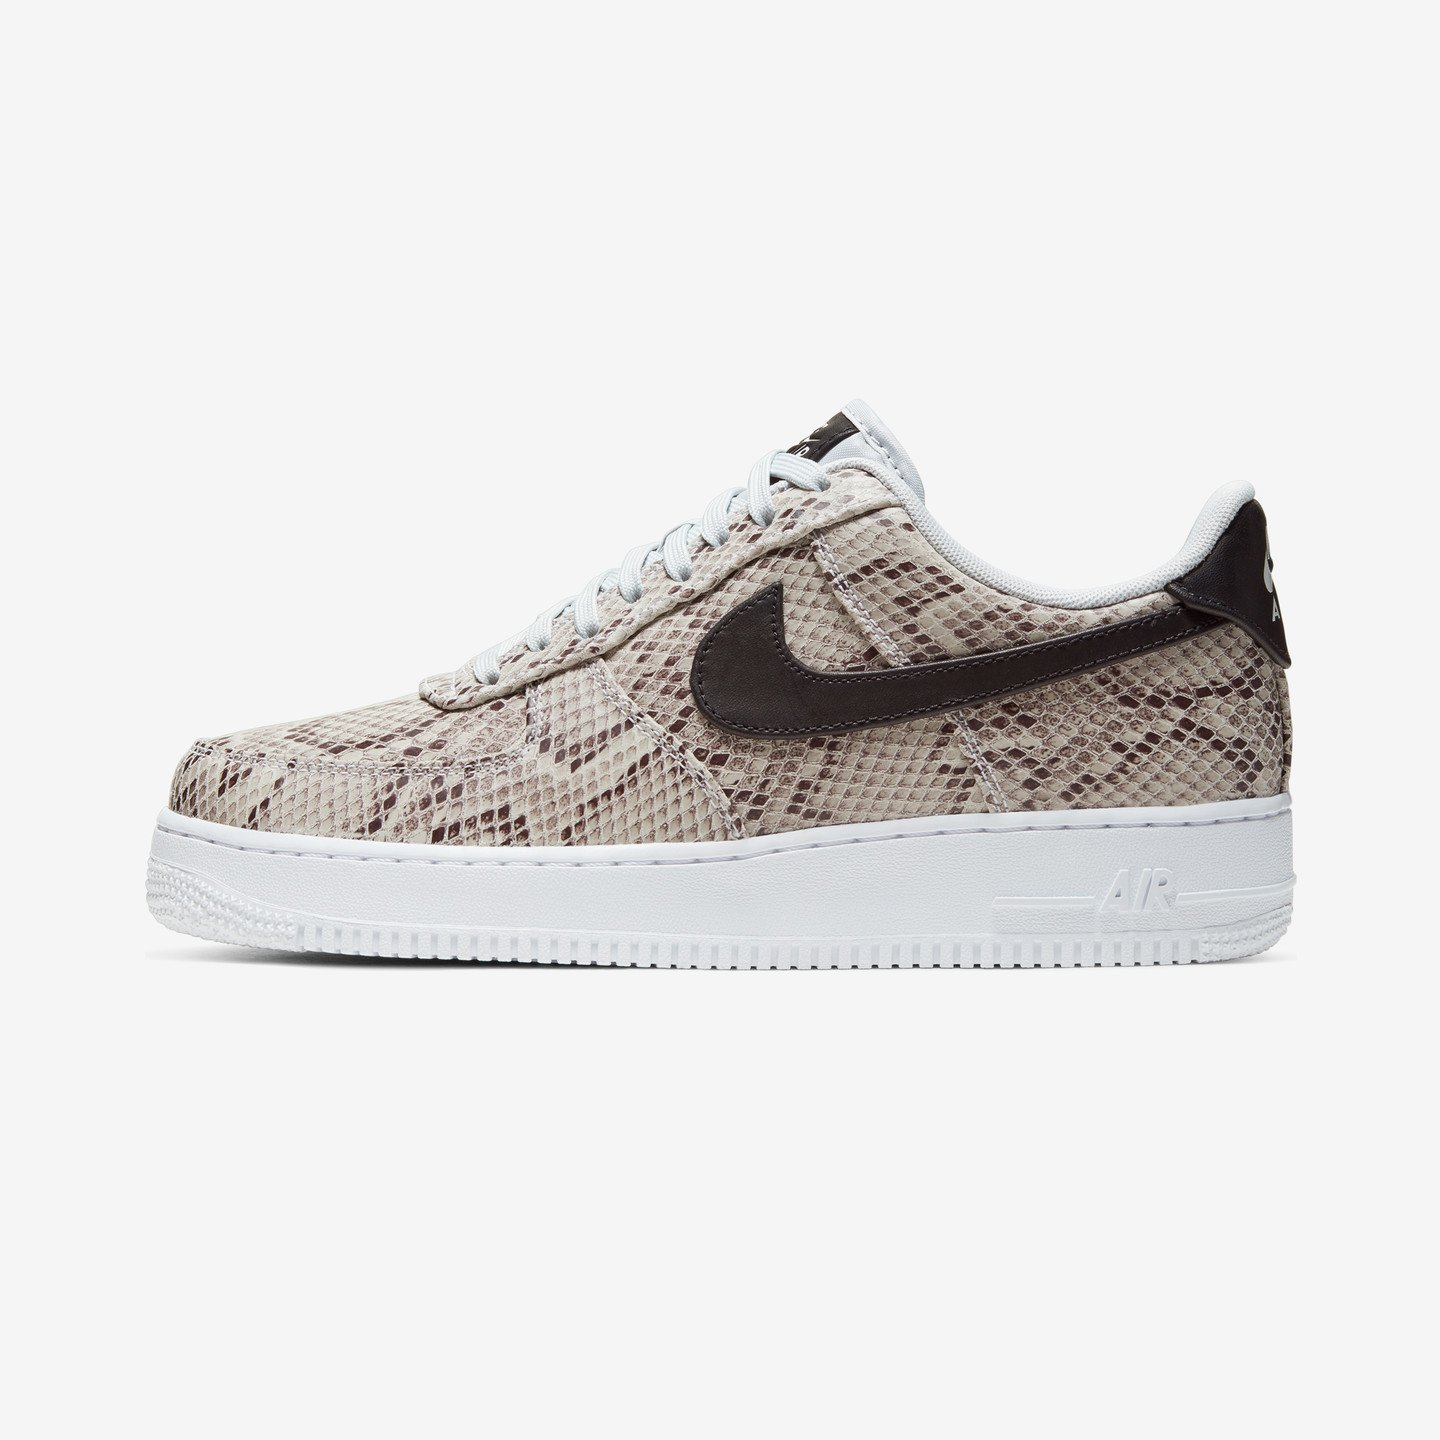 Nike Air Force 1 '07 Premium 'Snake' White / Black / Pure Platinum BQ4424-100